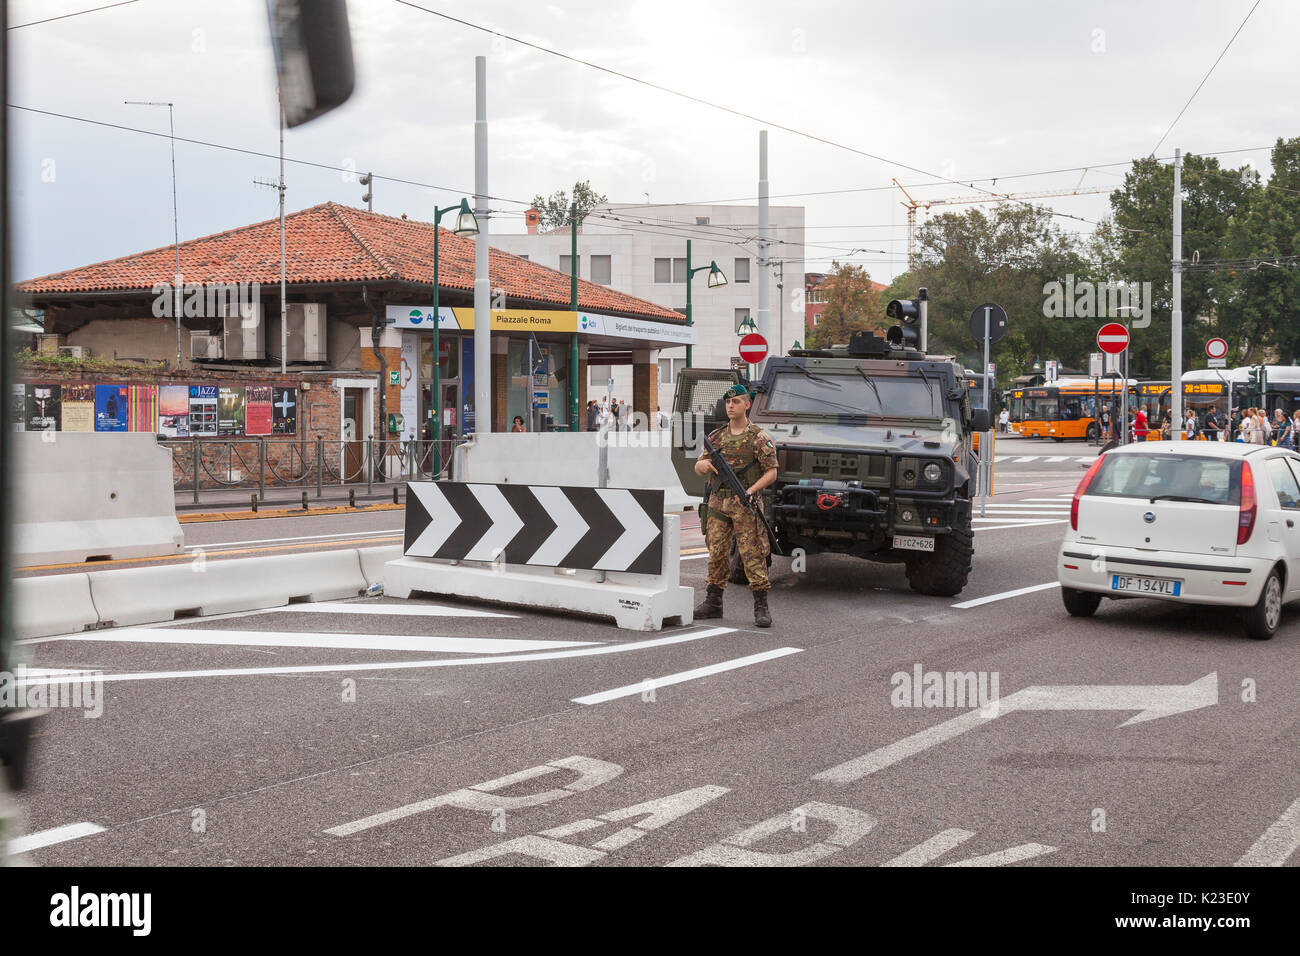 Venice, Veneto, Italy, 28th August 2017. Anti-terror concrete barriers and police presence in Piazzale Roma ahead of the start of the Venice Film Festival. This is the first day after completion of the installation of the barriers to check the viabilty of traffic  flow and pedestrians. An armoured car and soldier were in place on Ponte della Liberta blocking one lane. The barriers are designed to block any vehicular attack. Credit Mary Clarke/Alamy Live news - Stock Image